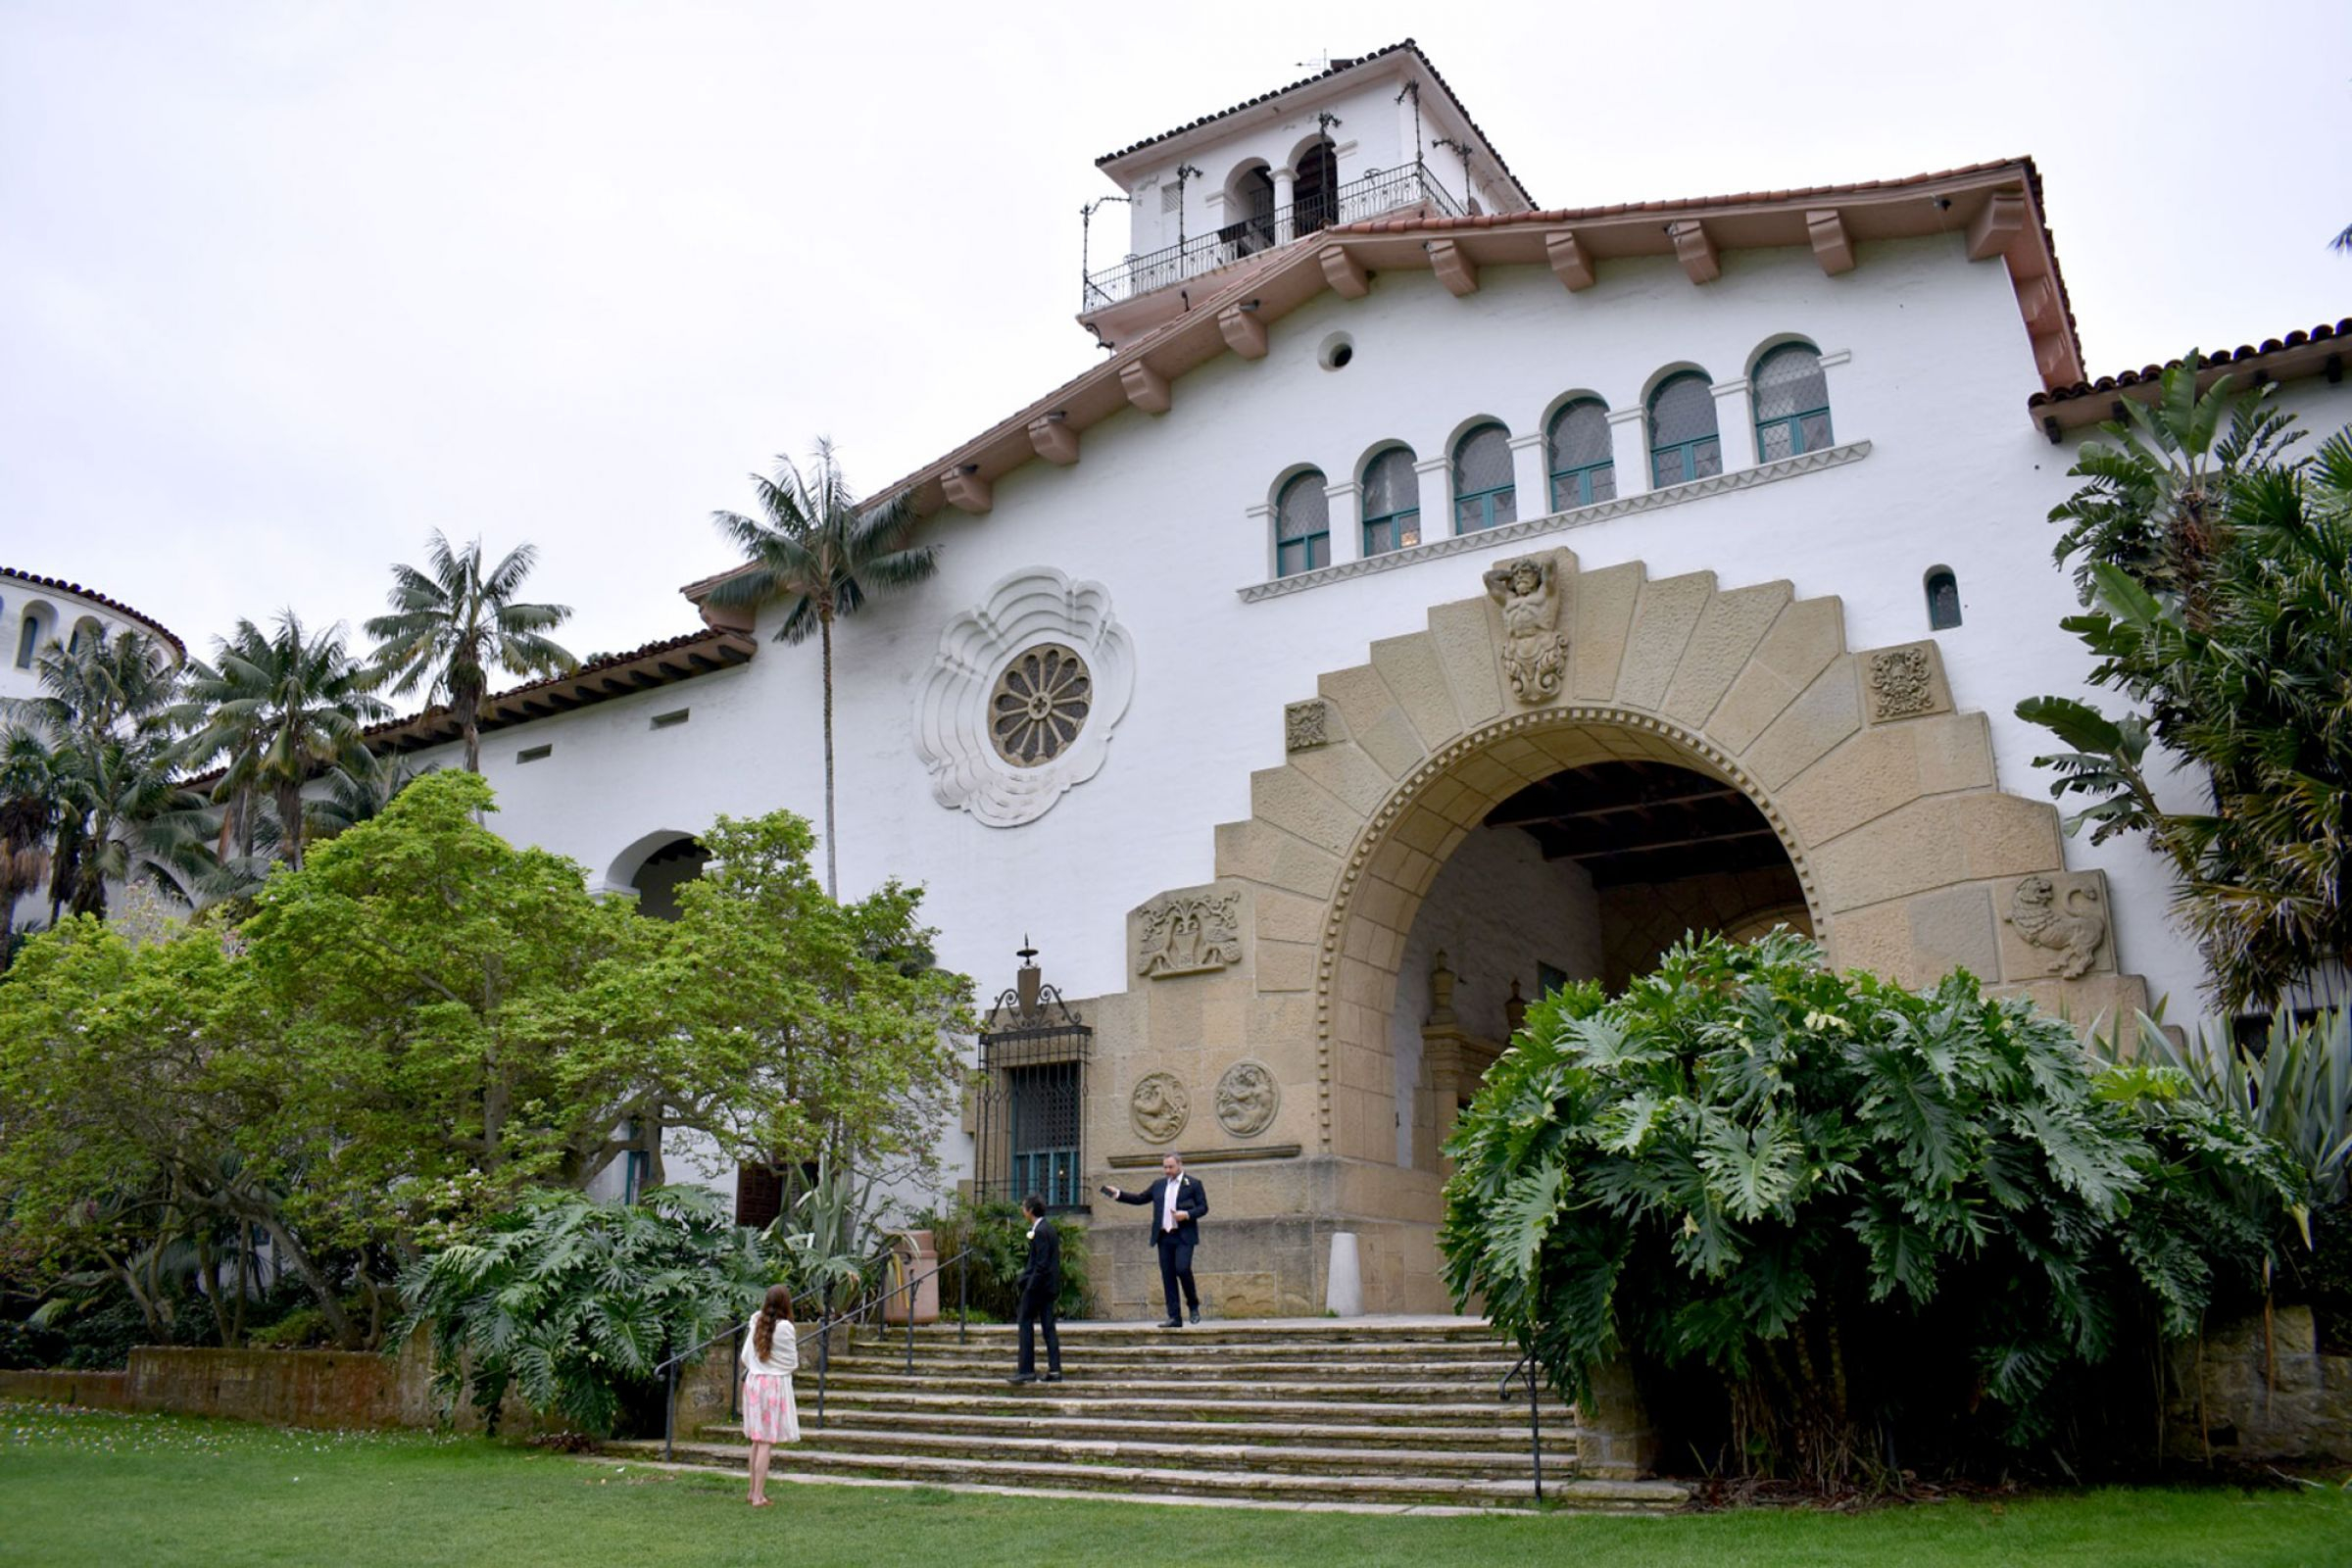 Coronavirus Response Likely To Curtail Operations In Santa Pertaining To Santa Barbara County Courthouse Calendar